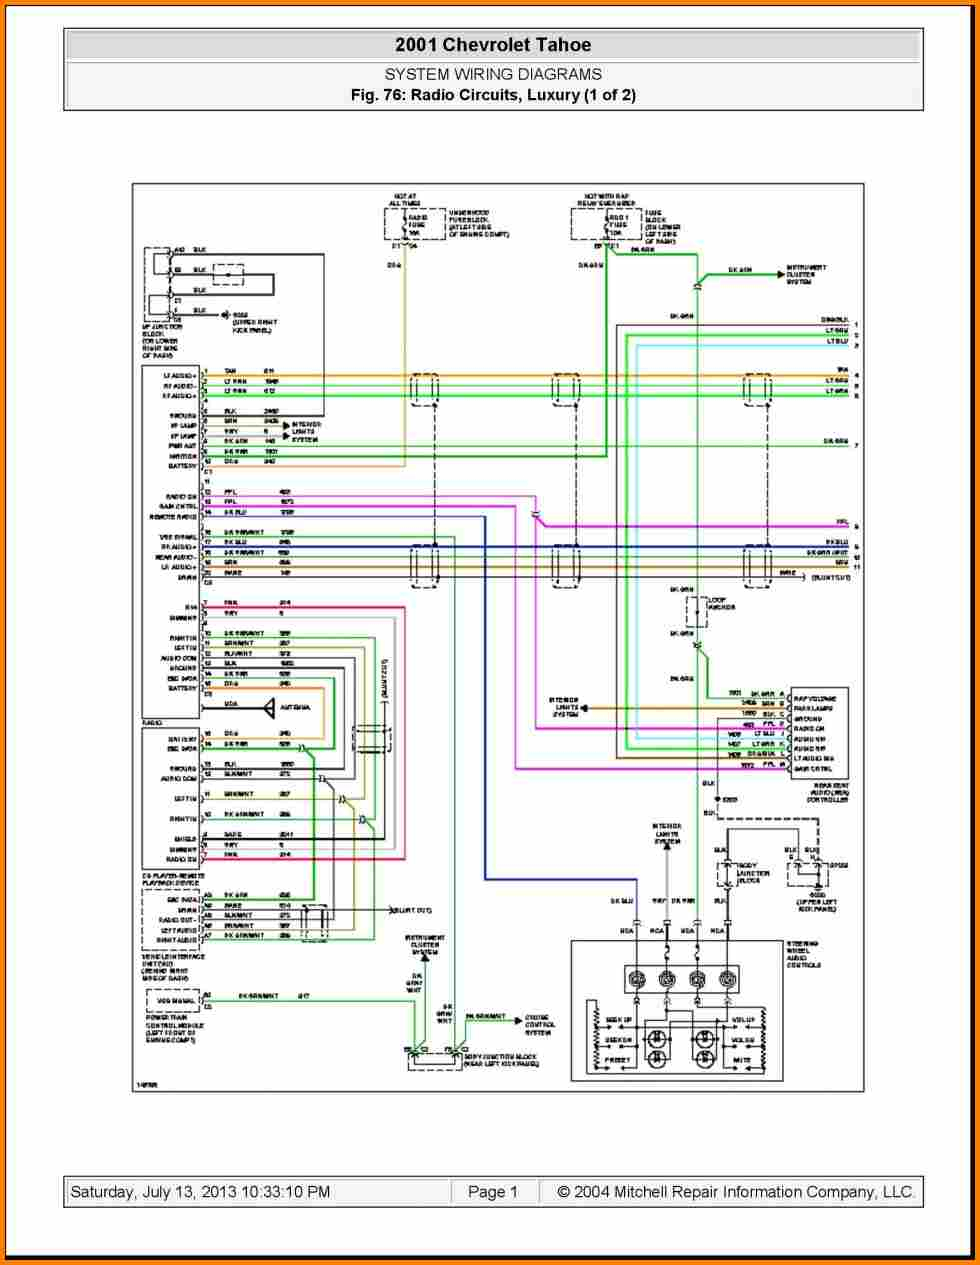 2004 silverado wiring diagram pdf Download-2005 Chevy Silverado Wiring 18-a